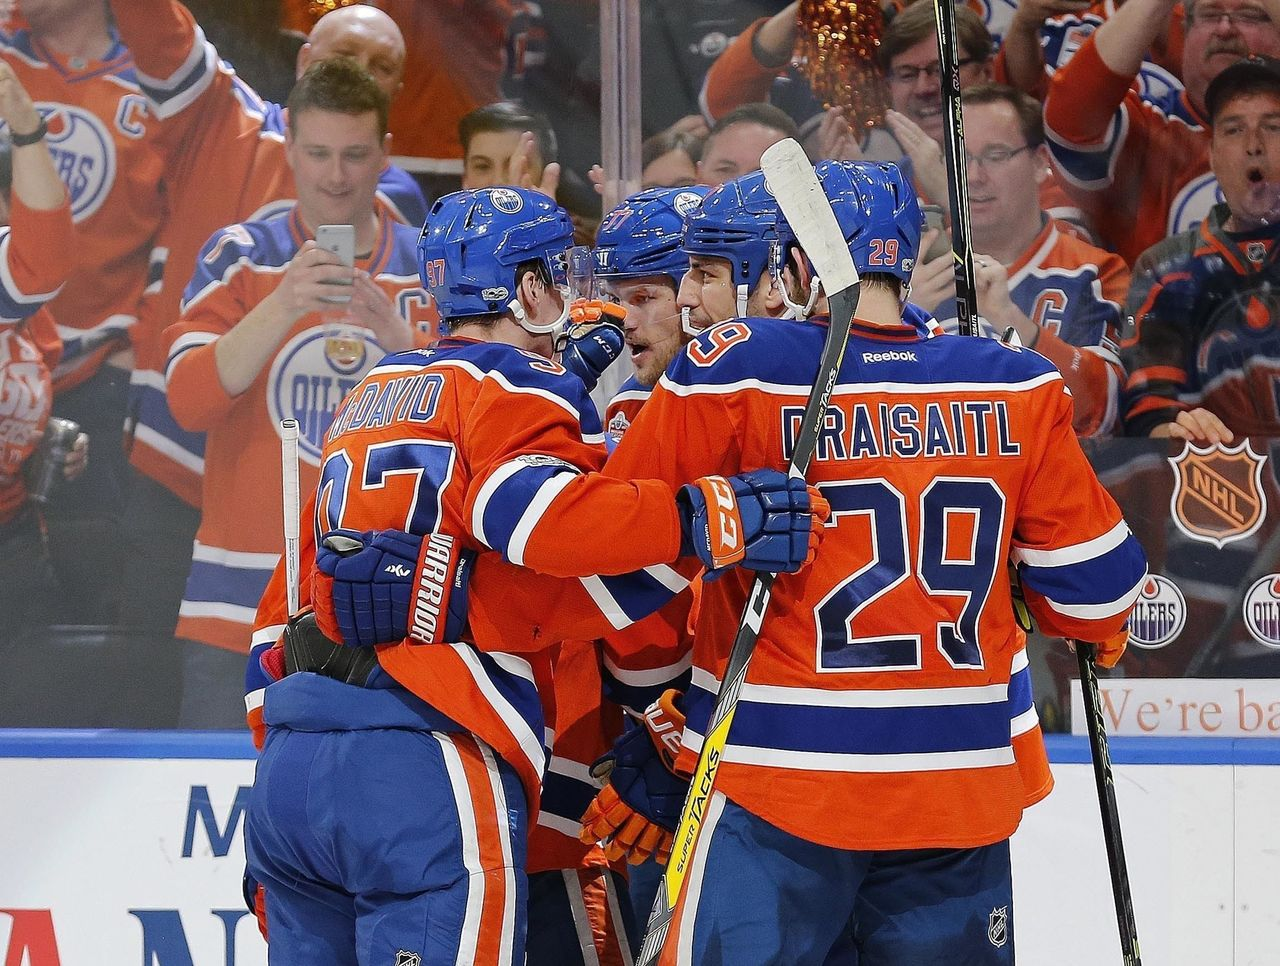 Cropped 2017 04 13t030441z 1333482532 nocid rtrmadp 3 nhl stanley cup playoffs san jose sharks at edmonton oilers